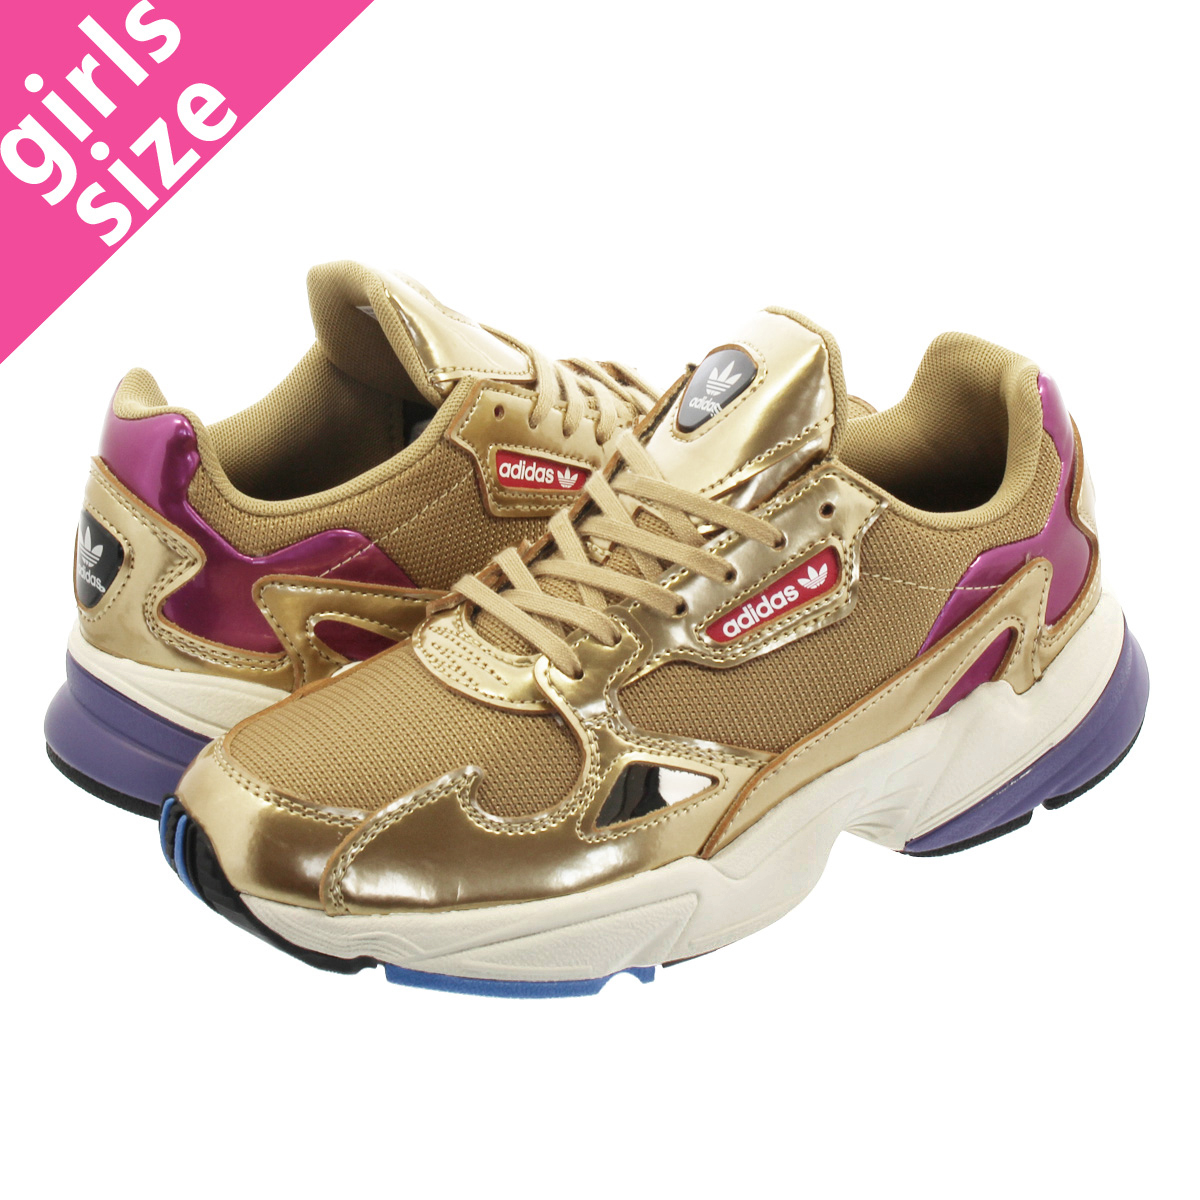 gold adidas womens shoes Online